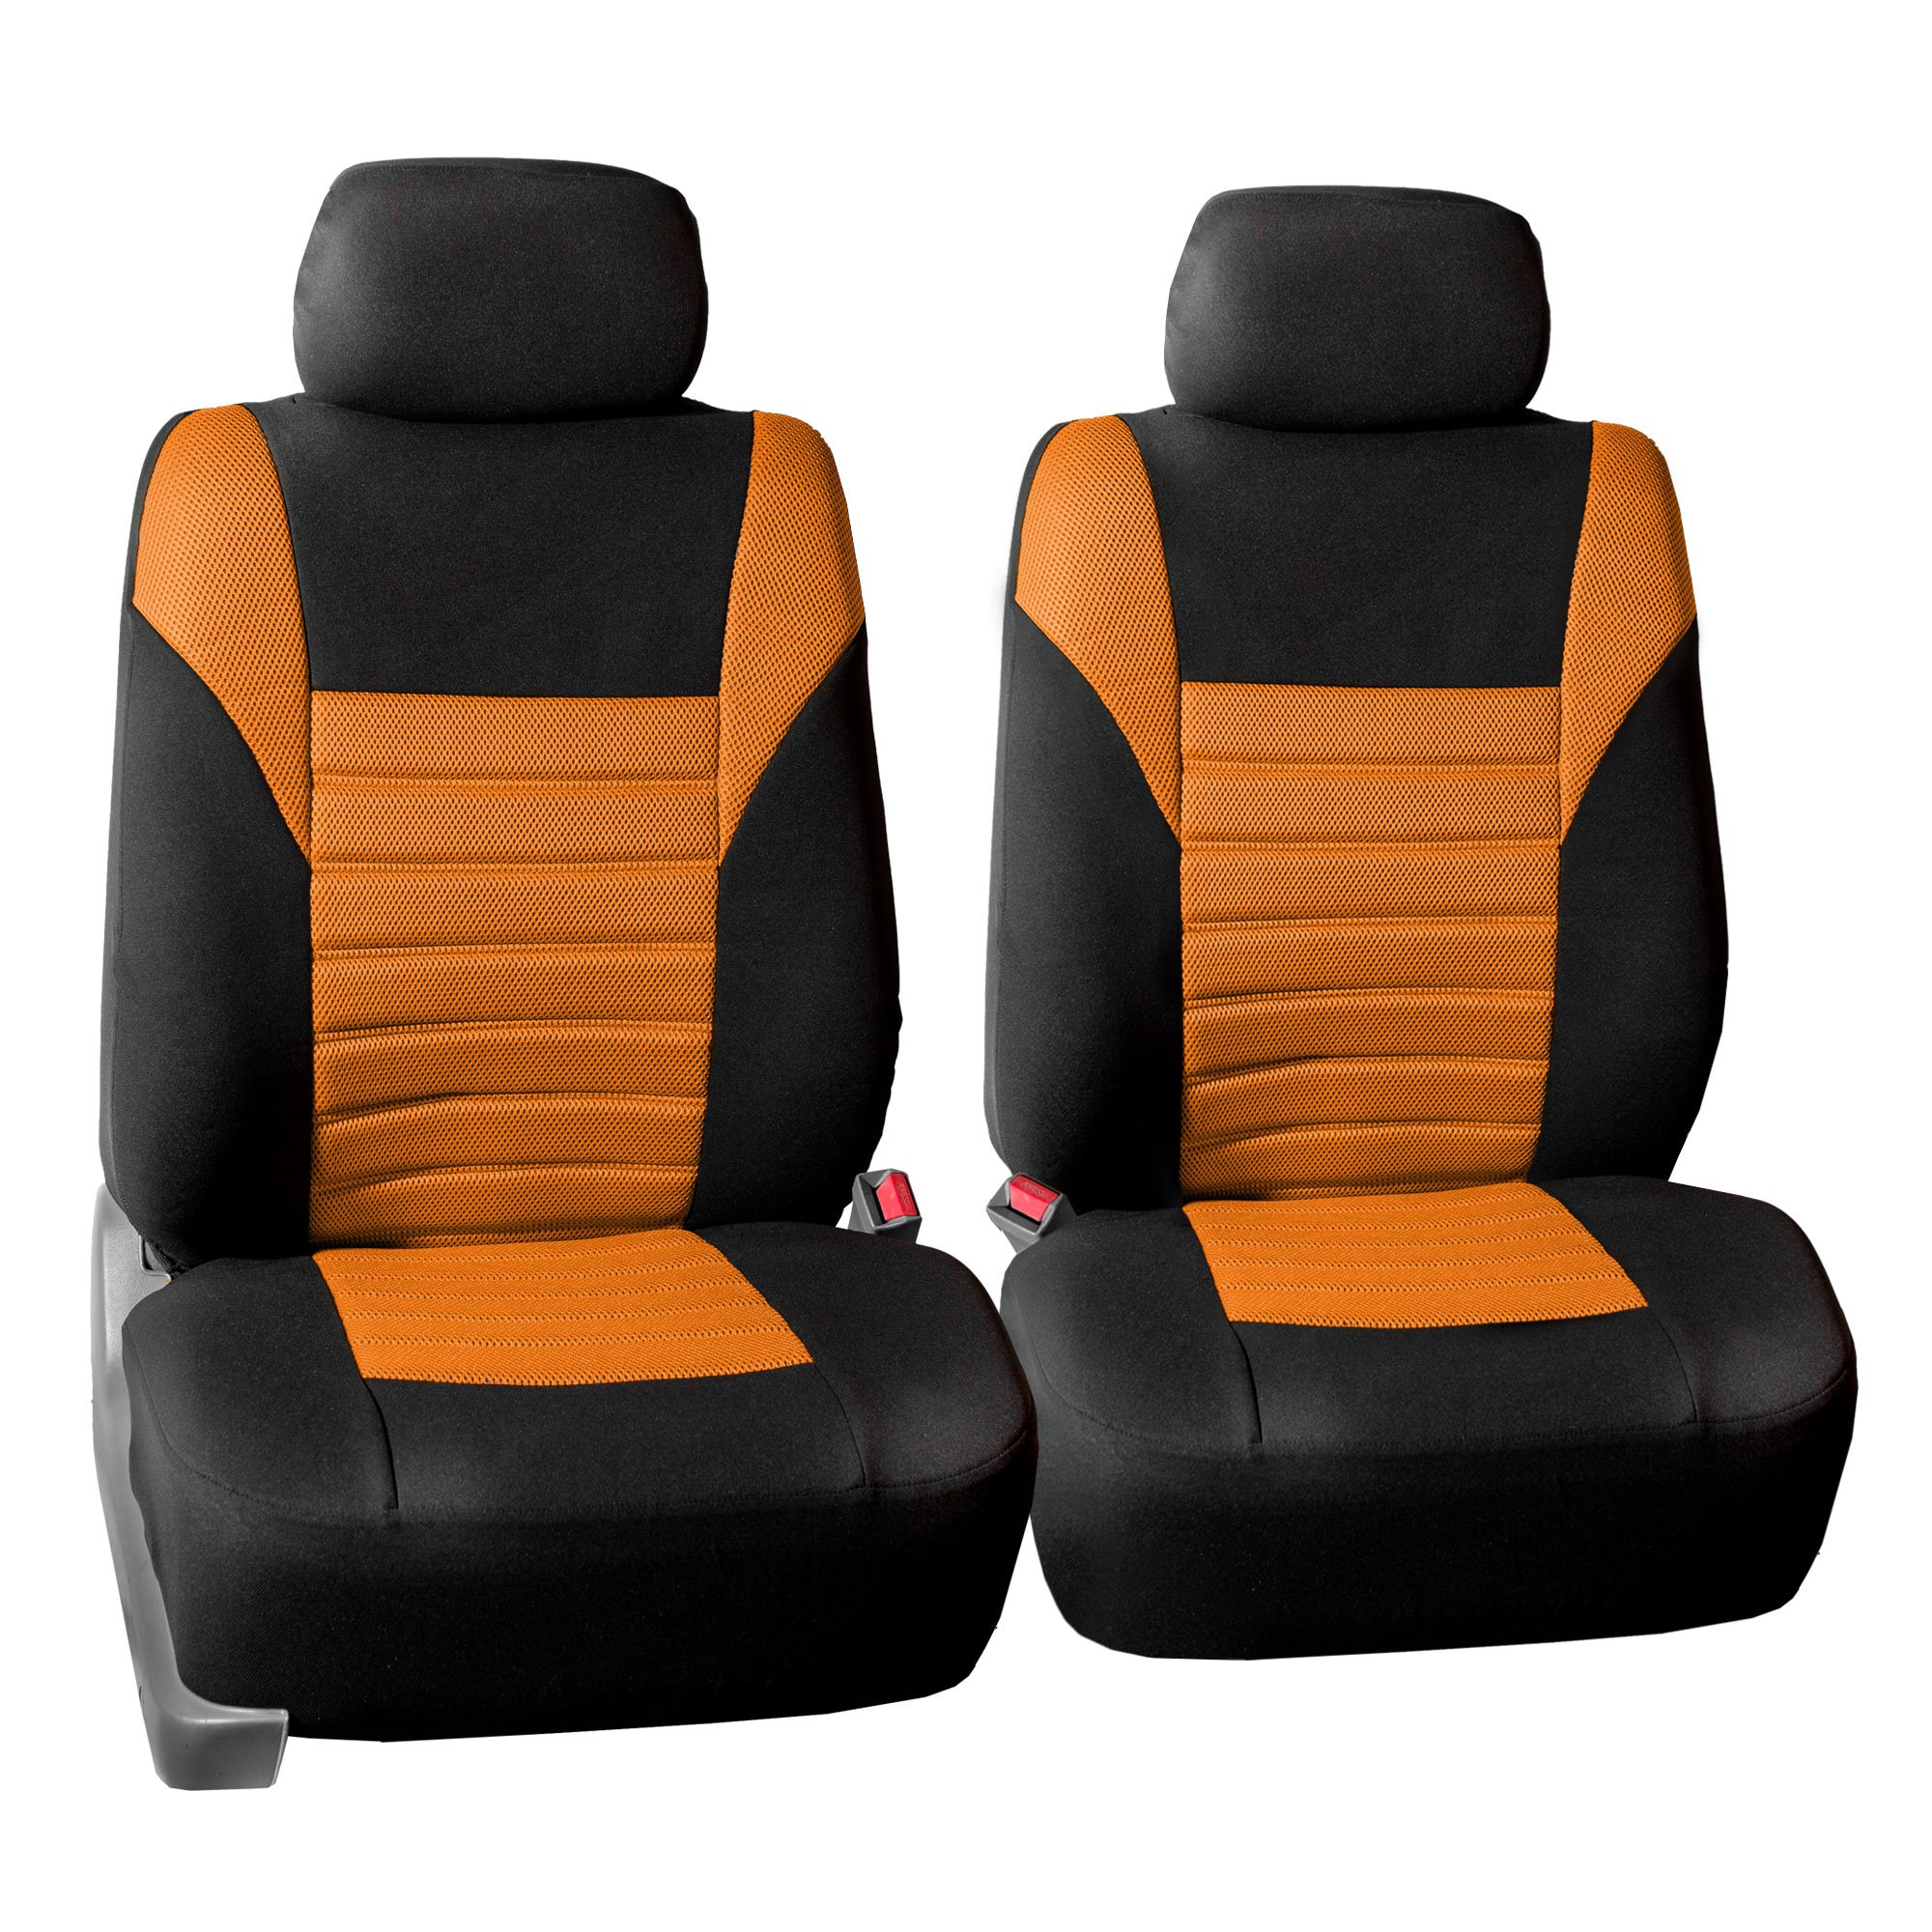 w FH Group FB068102 Premium 3D Air Mesh Seat Covers Pair Set Gift or Van Airbag Compatible Truck Orange//Black Color- Fit Most Car SUV